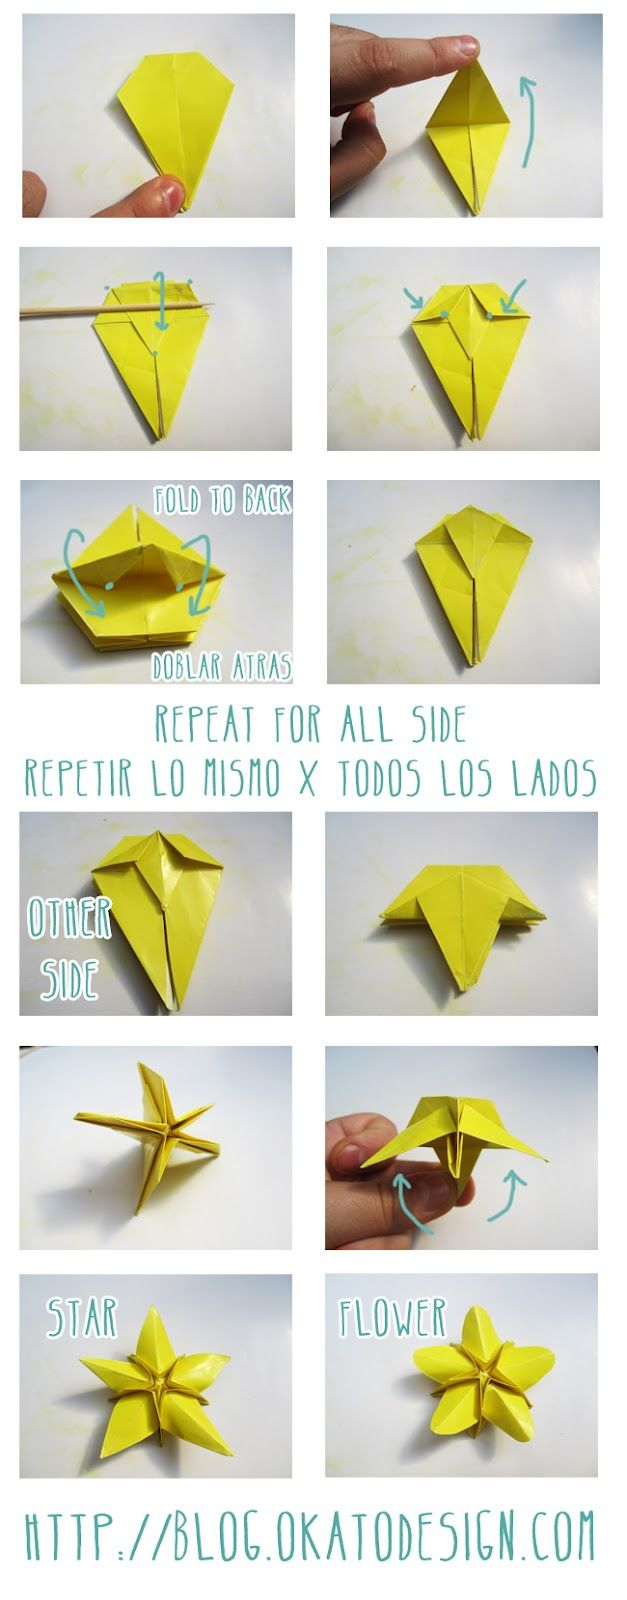 Diy and crafts pic3 origamis star flower httpblogokatodesign diy and crafts pic3 origamis star flower httpblogokatodesign mightylinksfo